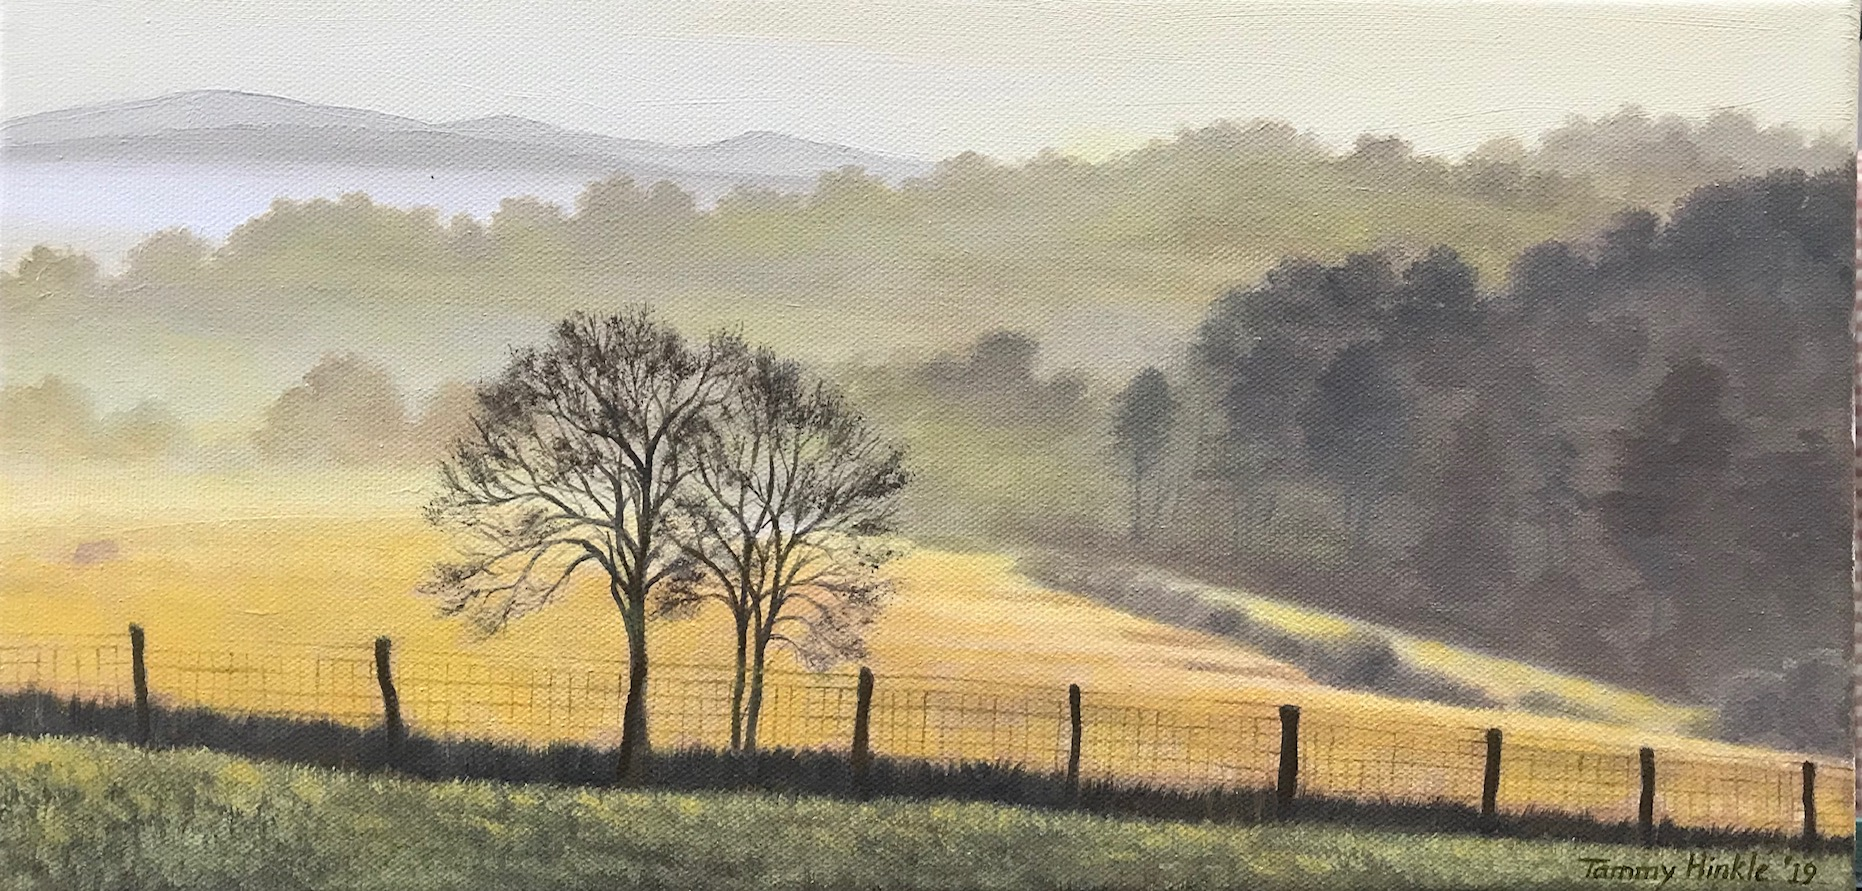 Autumn Morning - Tammy Hinkle